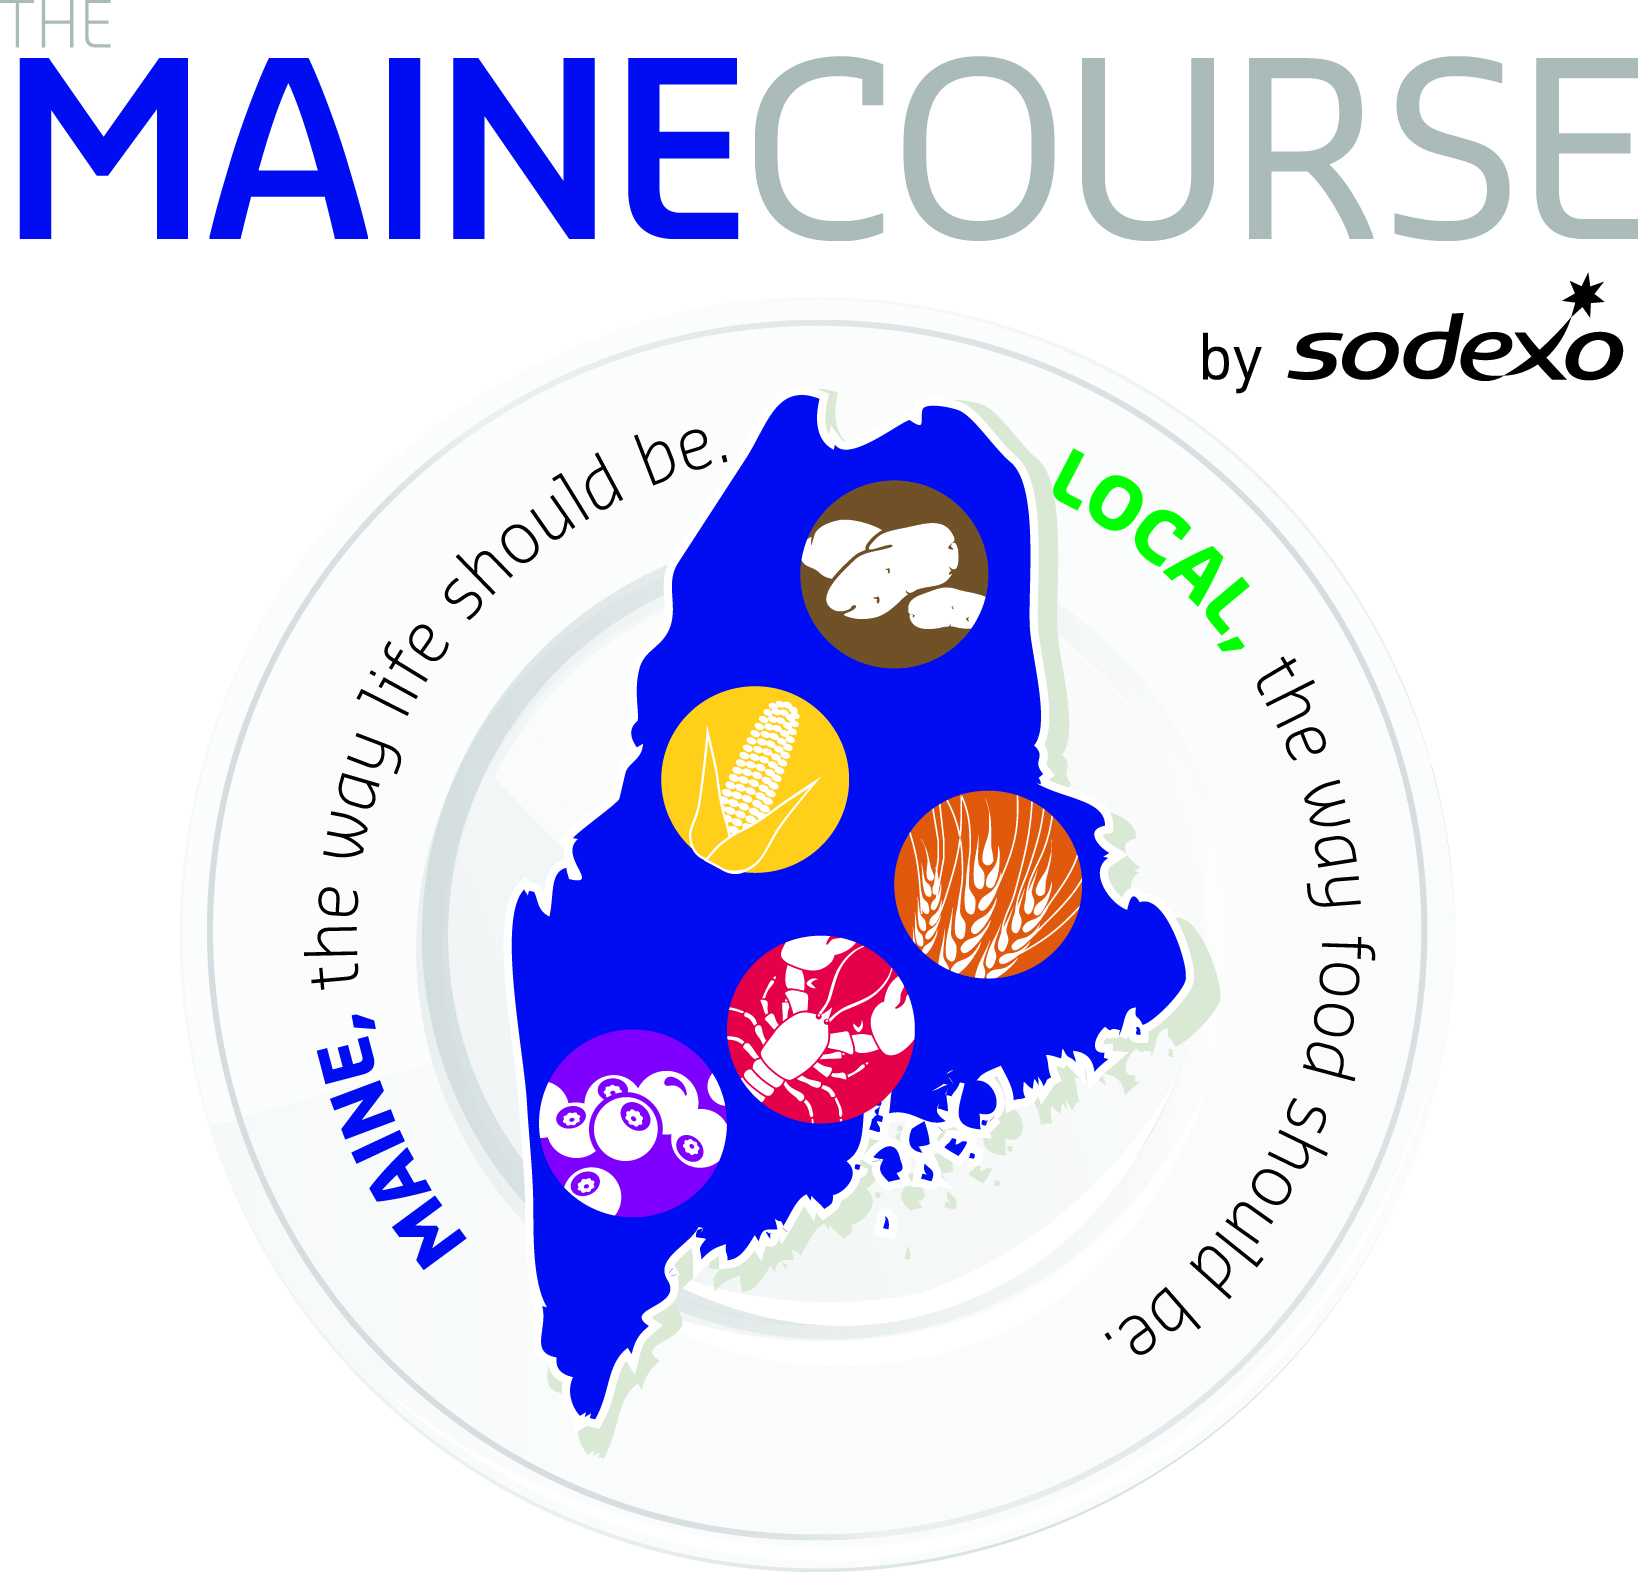 Sodexo_Maine Course-Logo_curves (1).jpg